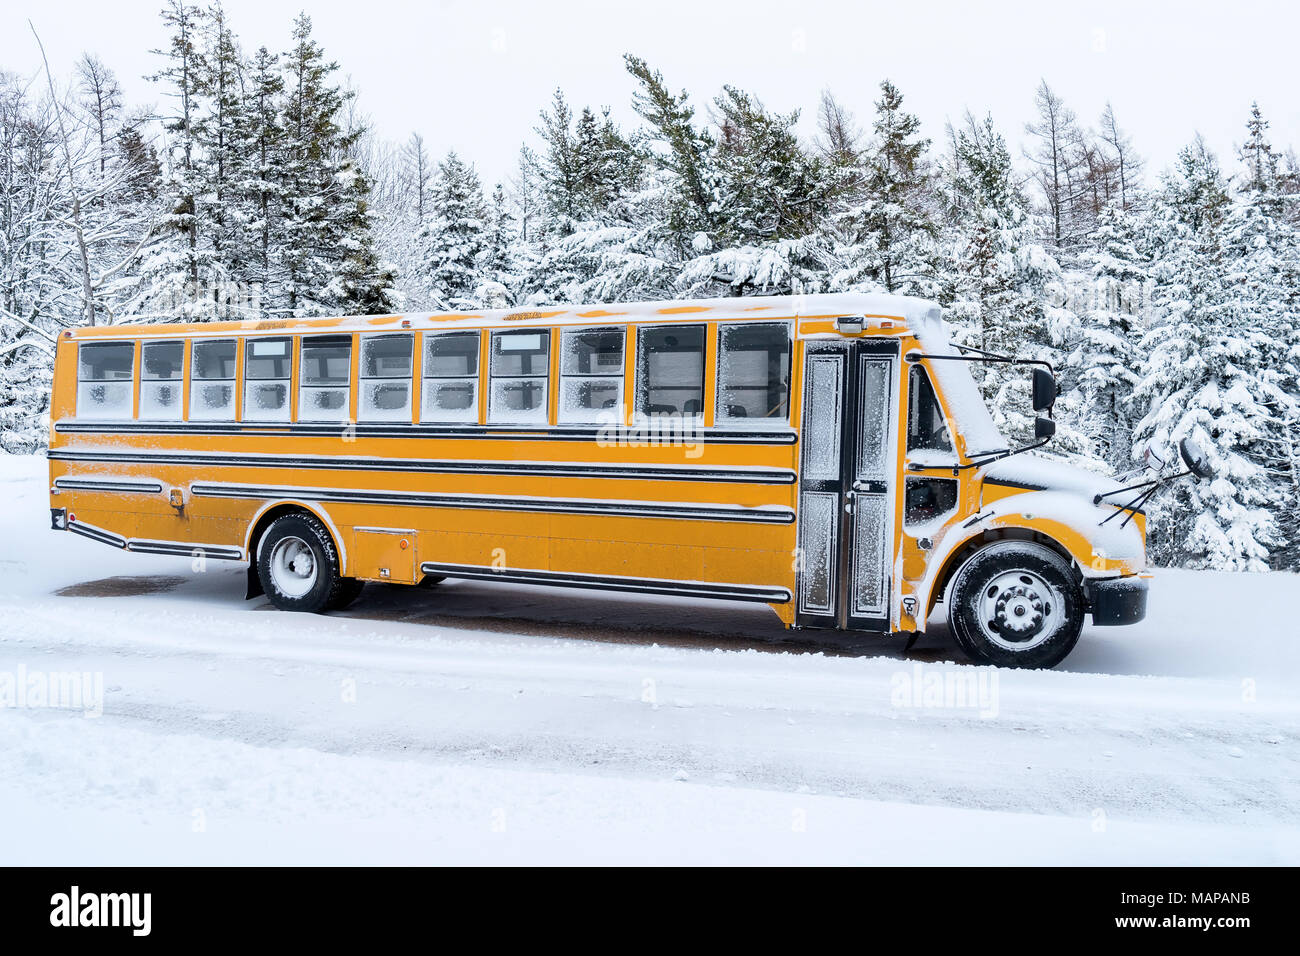 School bus dusted with light covering of snow. - Stock Image